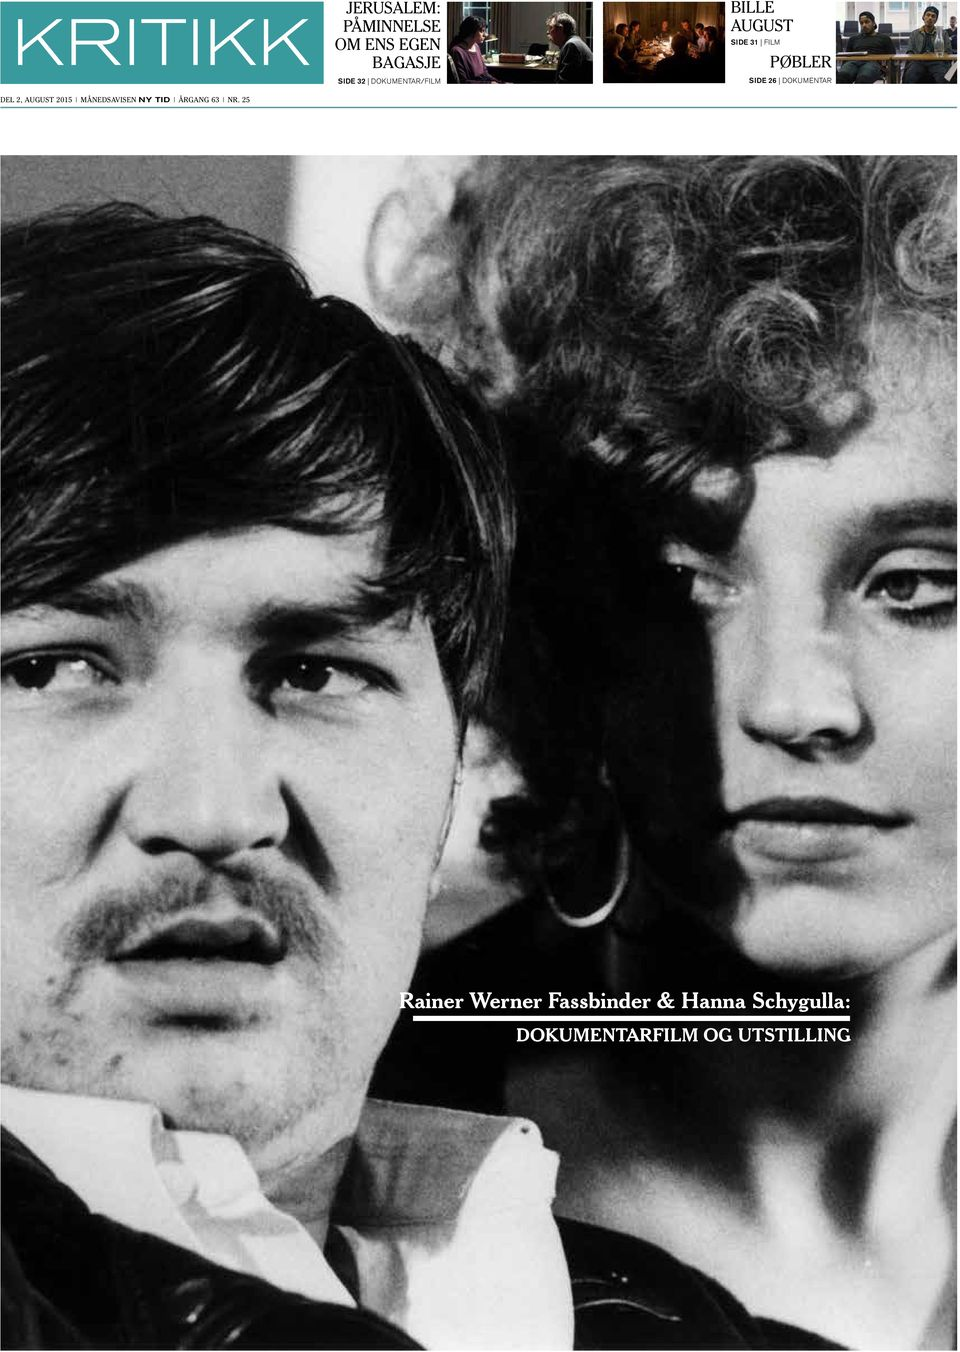 AUGUST SIDE 31 FILM PØBLER SIDE 26 DOKUMENTAR Rainer Werner Fassbinder &